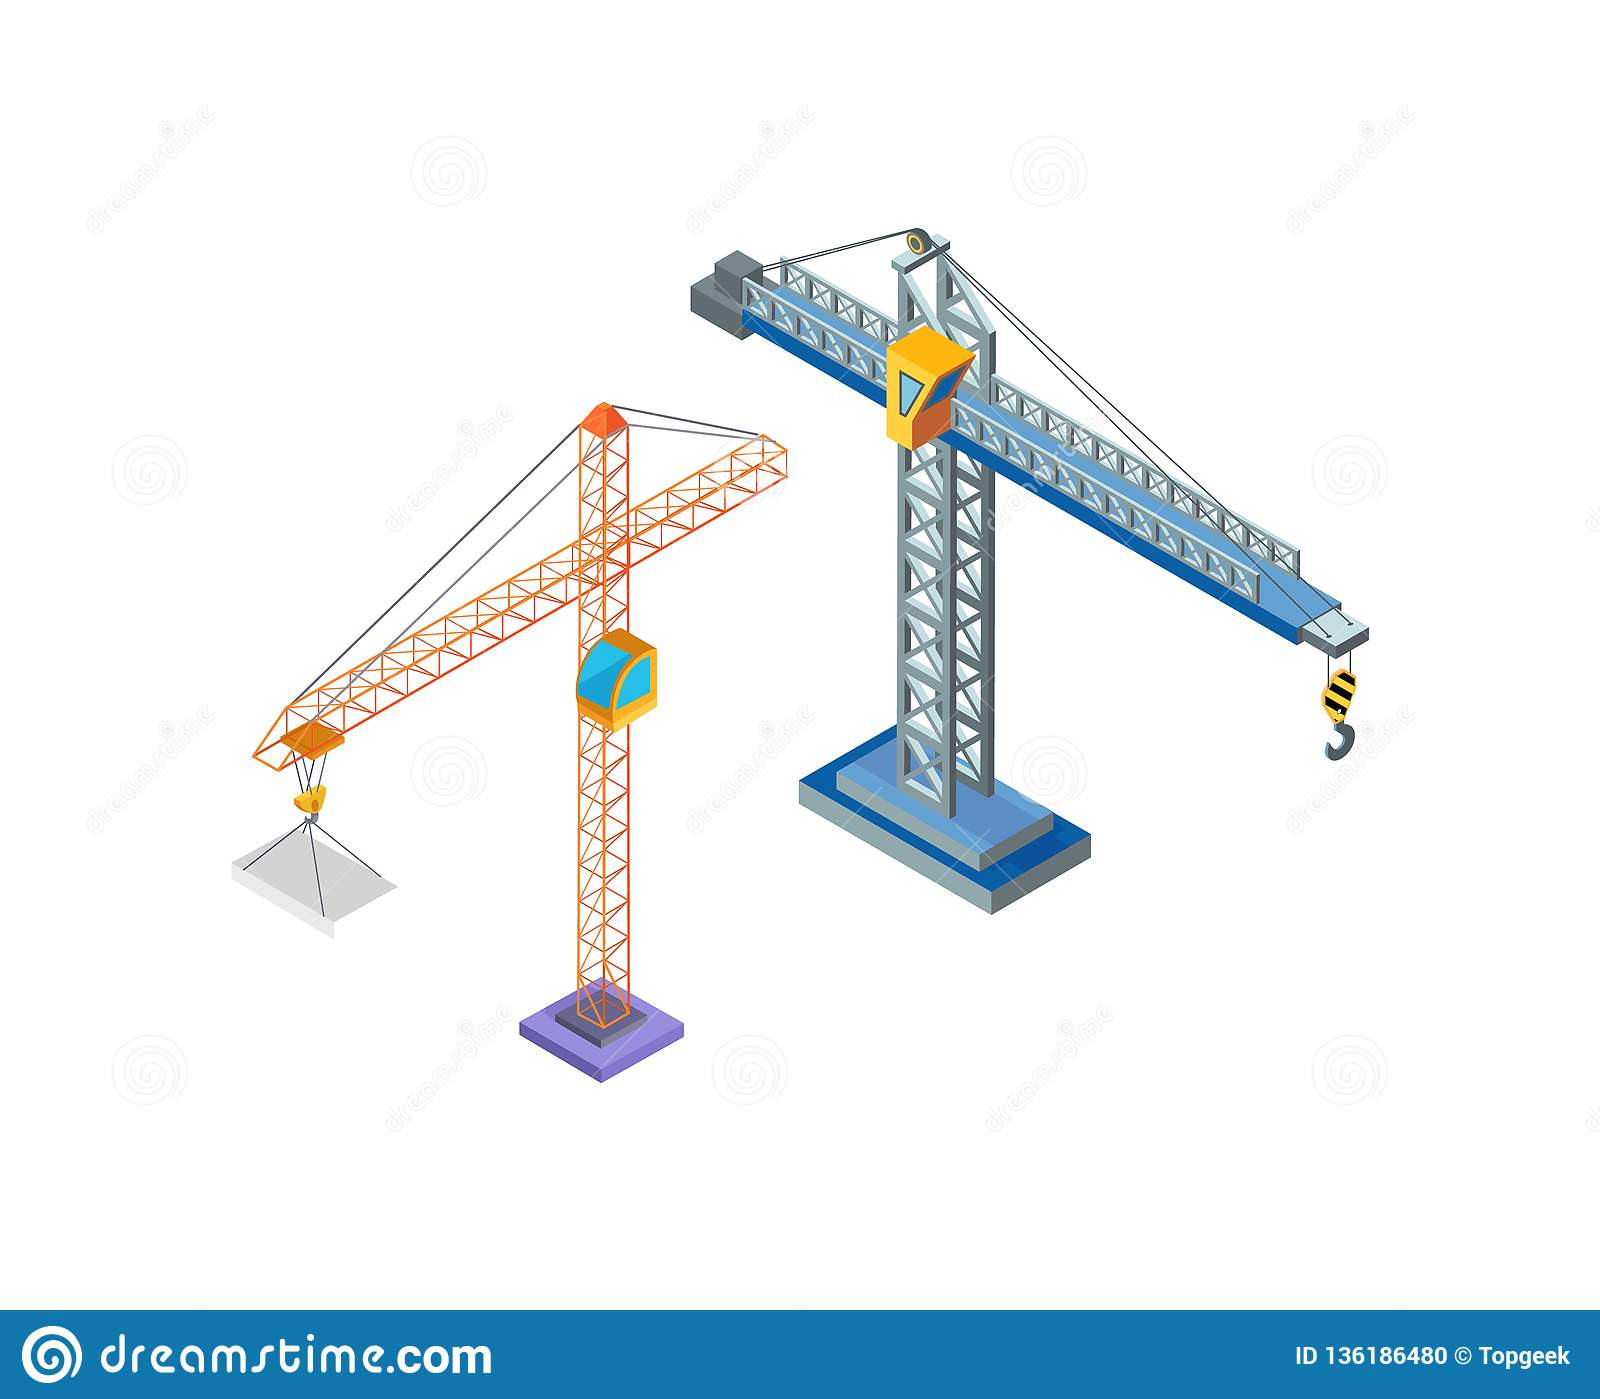 hight resolution of crane industrial machine steel tower with hook for lifting blocks icons vector building constructions hoist working machinery lift moving capacity